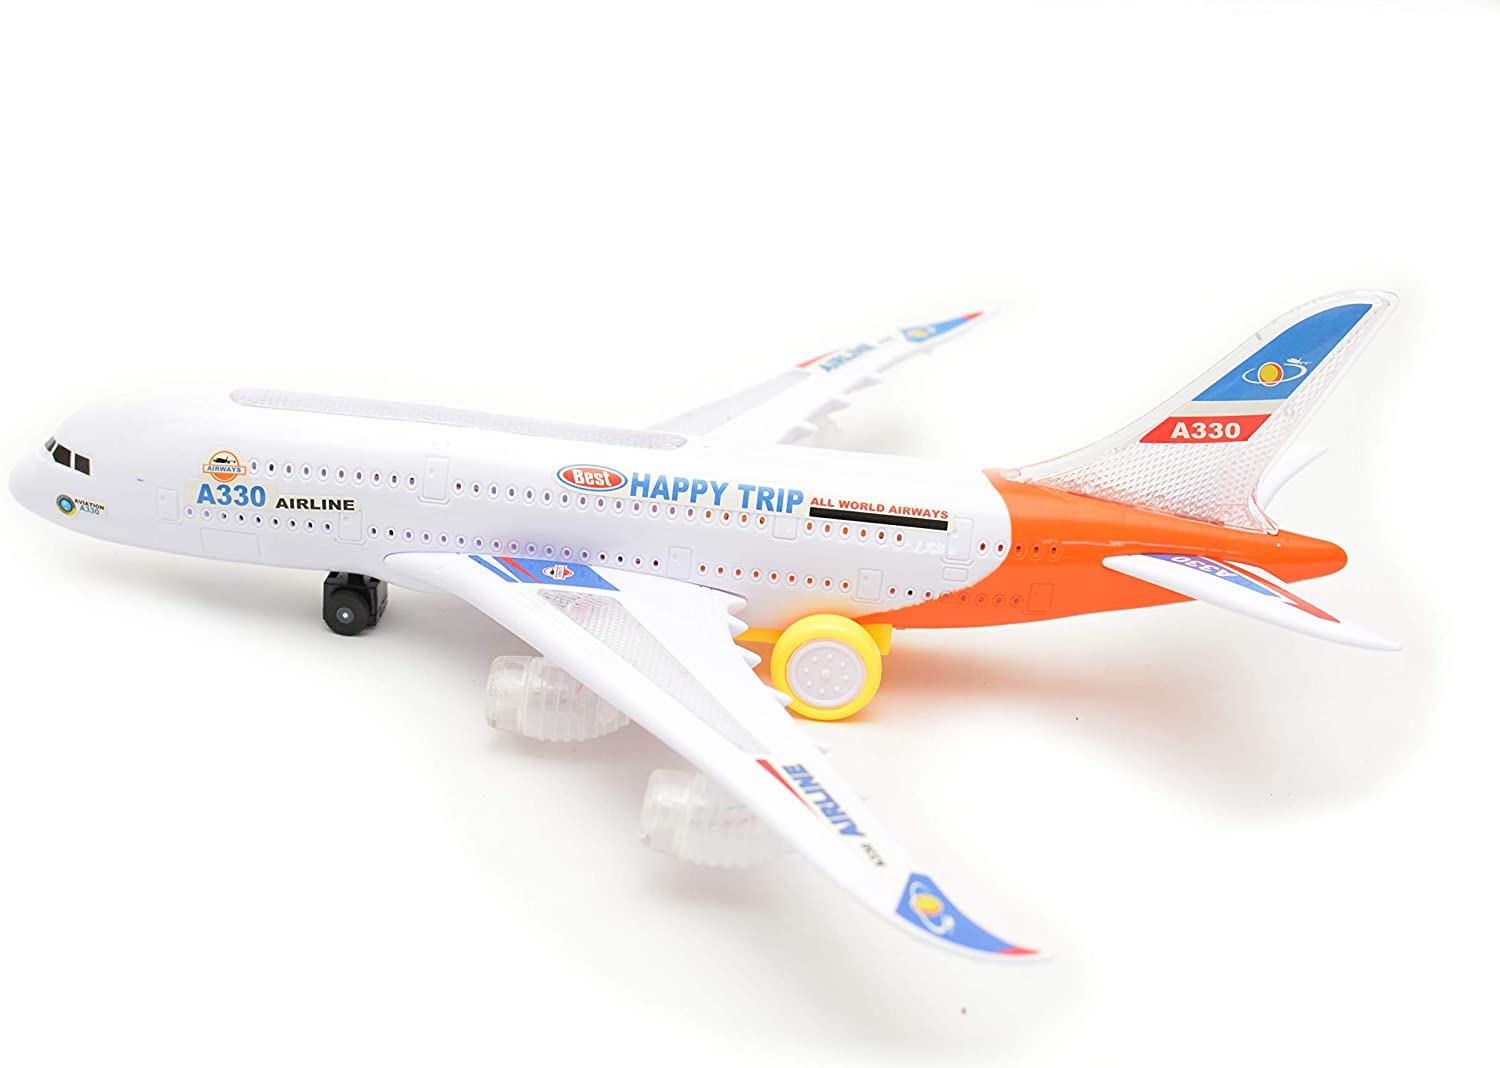 Airbus A380 Airplane Action Toys with Colorful Dynamic Lights and Realistic Airplane Sounds. Airplane Toys for Kids A330 Bump and Go Action Battery Operated Airplane Toy with Light and Sound